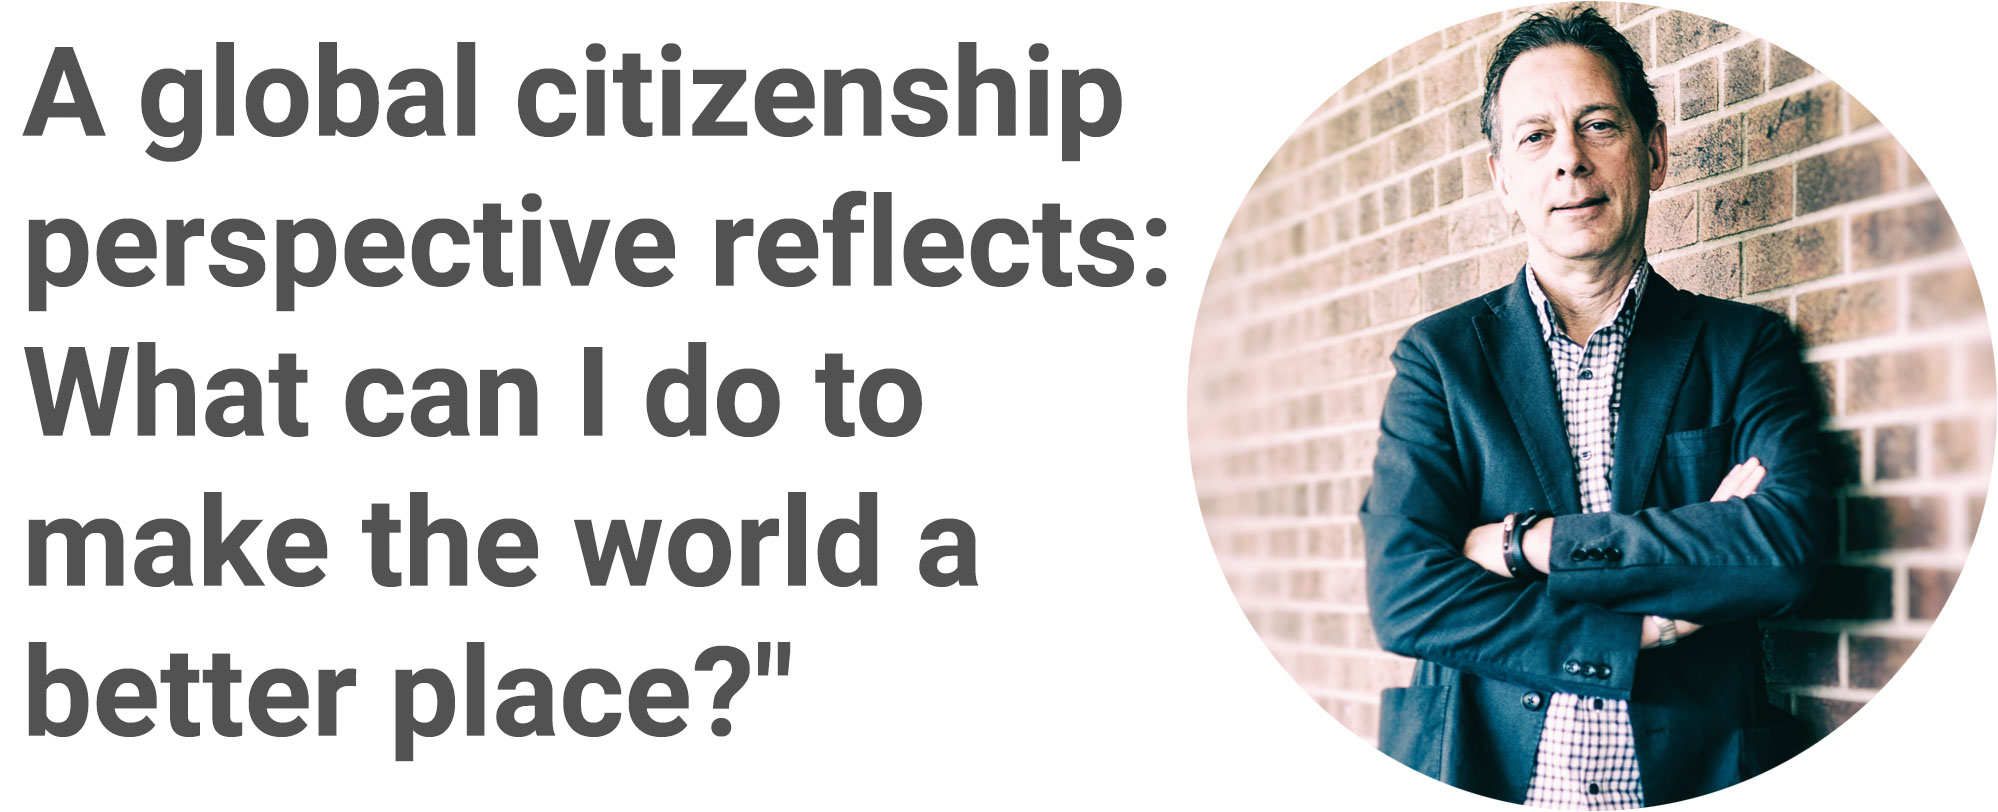 Text that reads: A global citizenship perspective reflects: What can I do to make the world a better place?